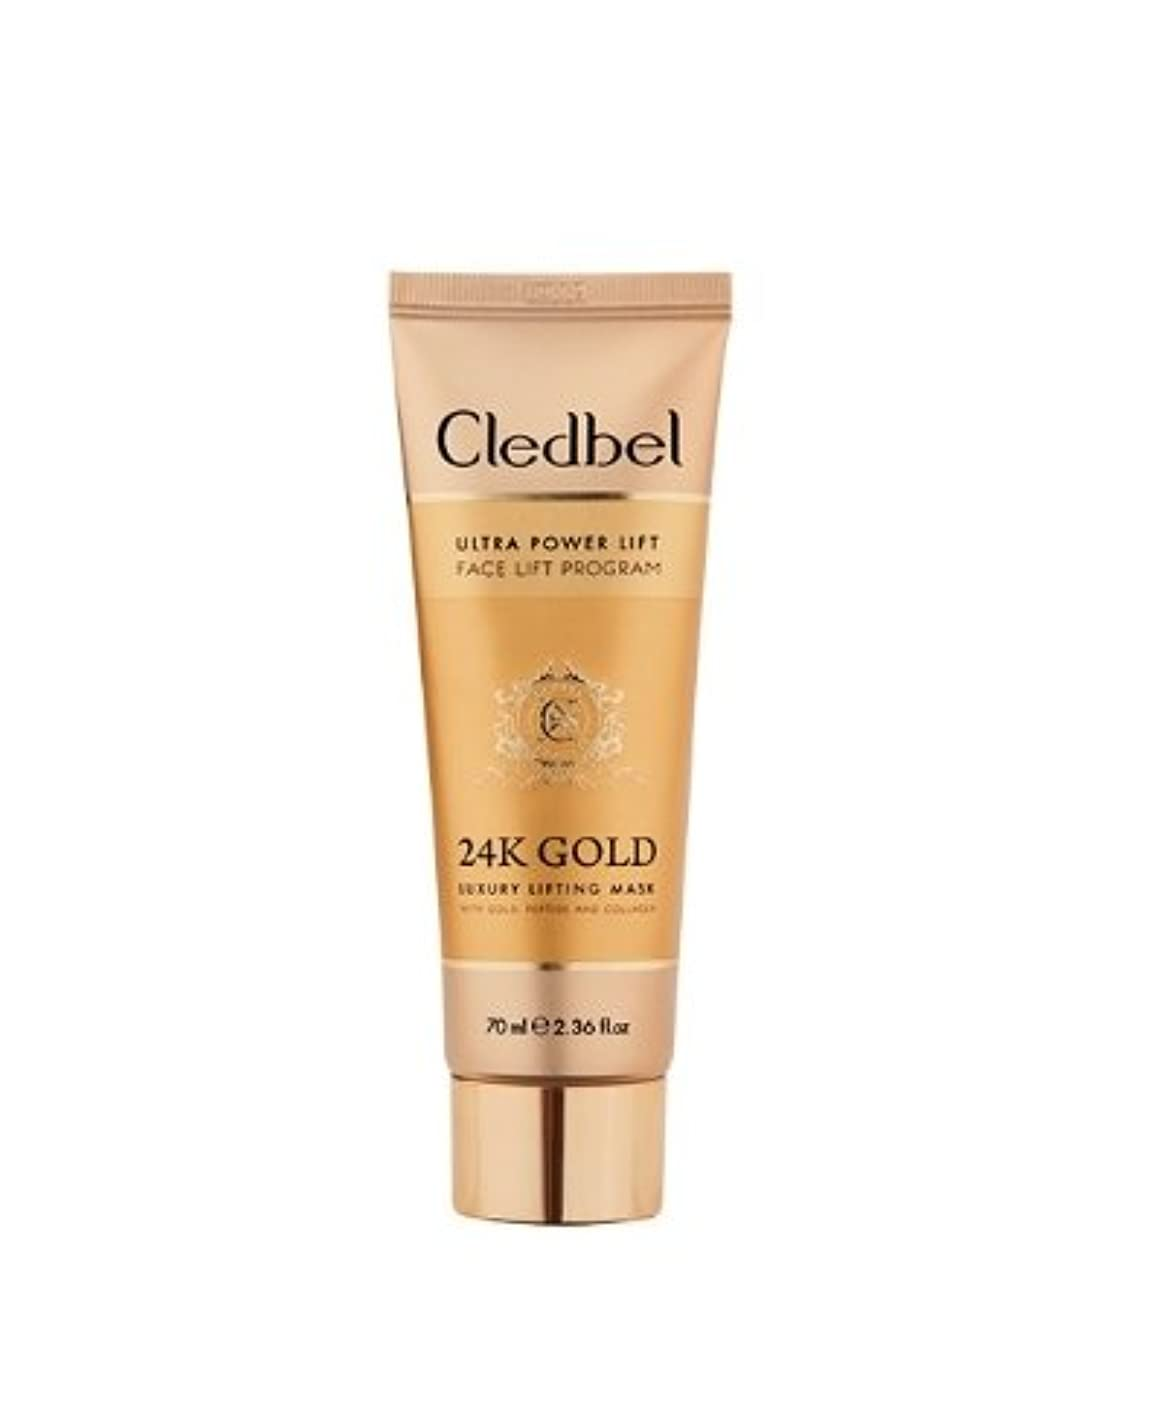 聖職者データムアミューズメント[Cledbel]Cledbel Ultra Power Lift 24K Gold Luxury Lifting Mask 70ml